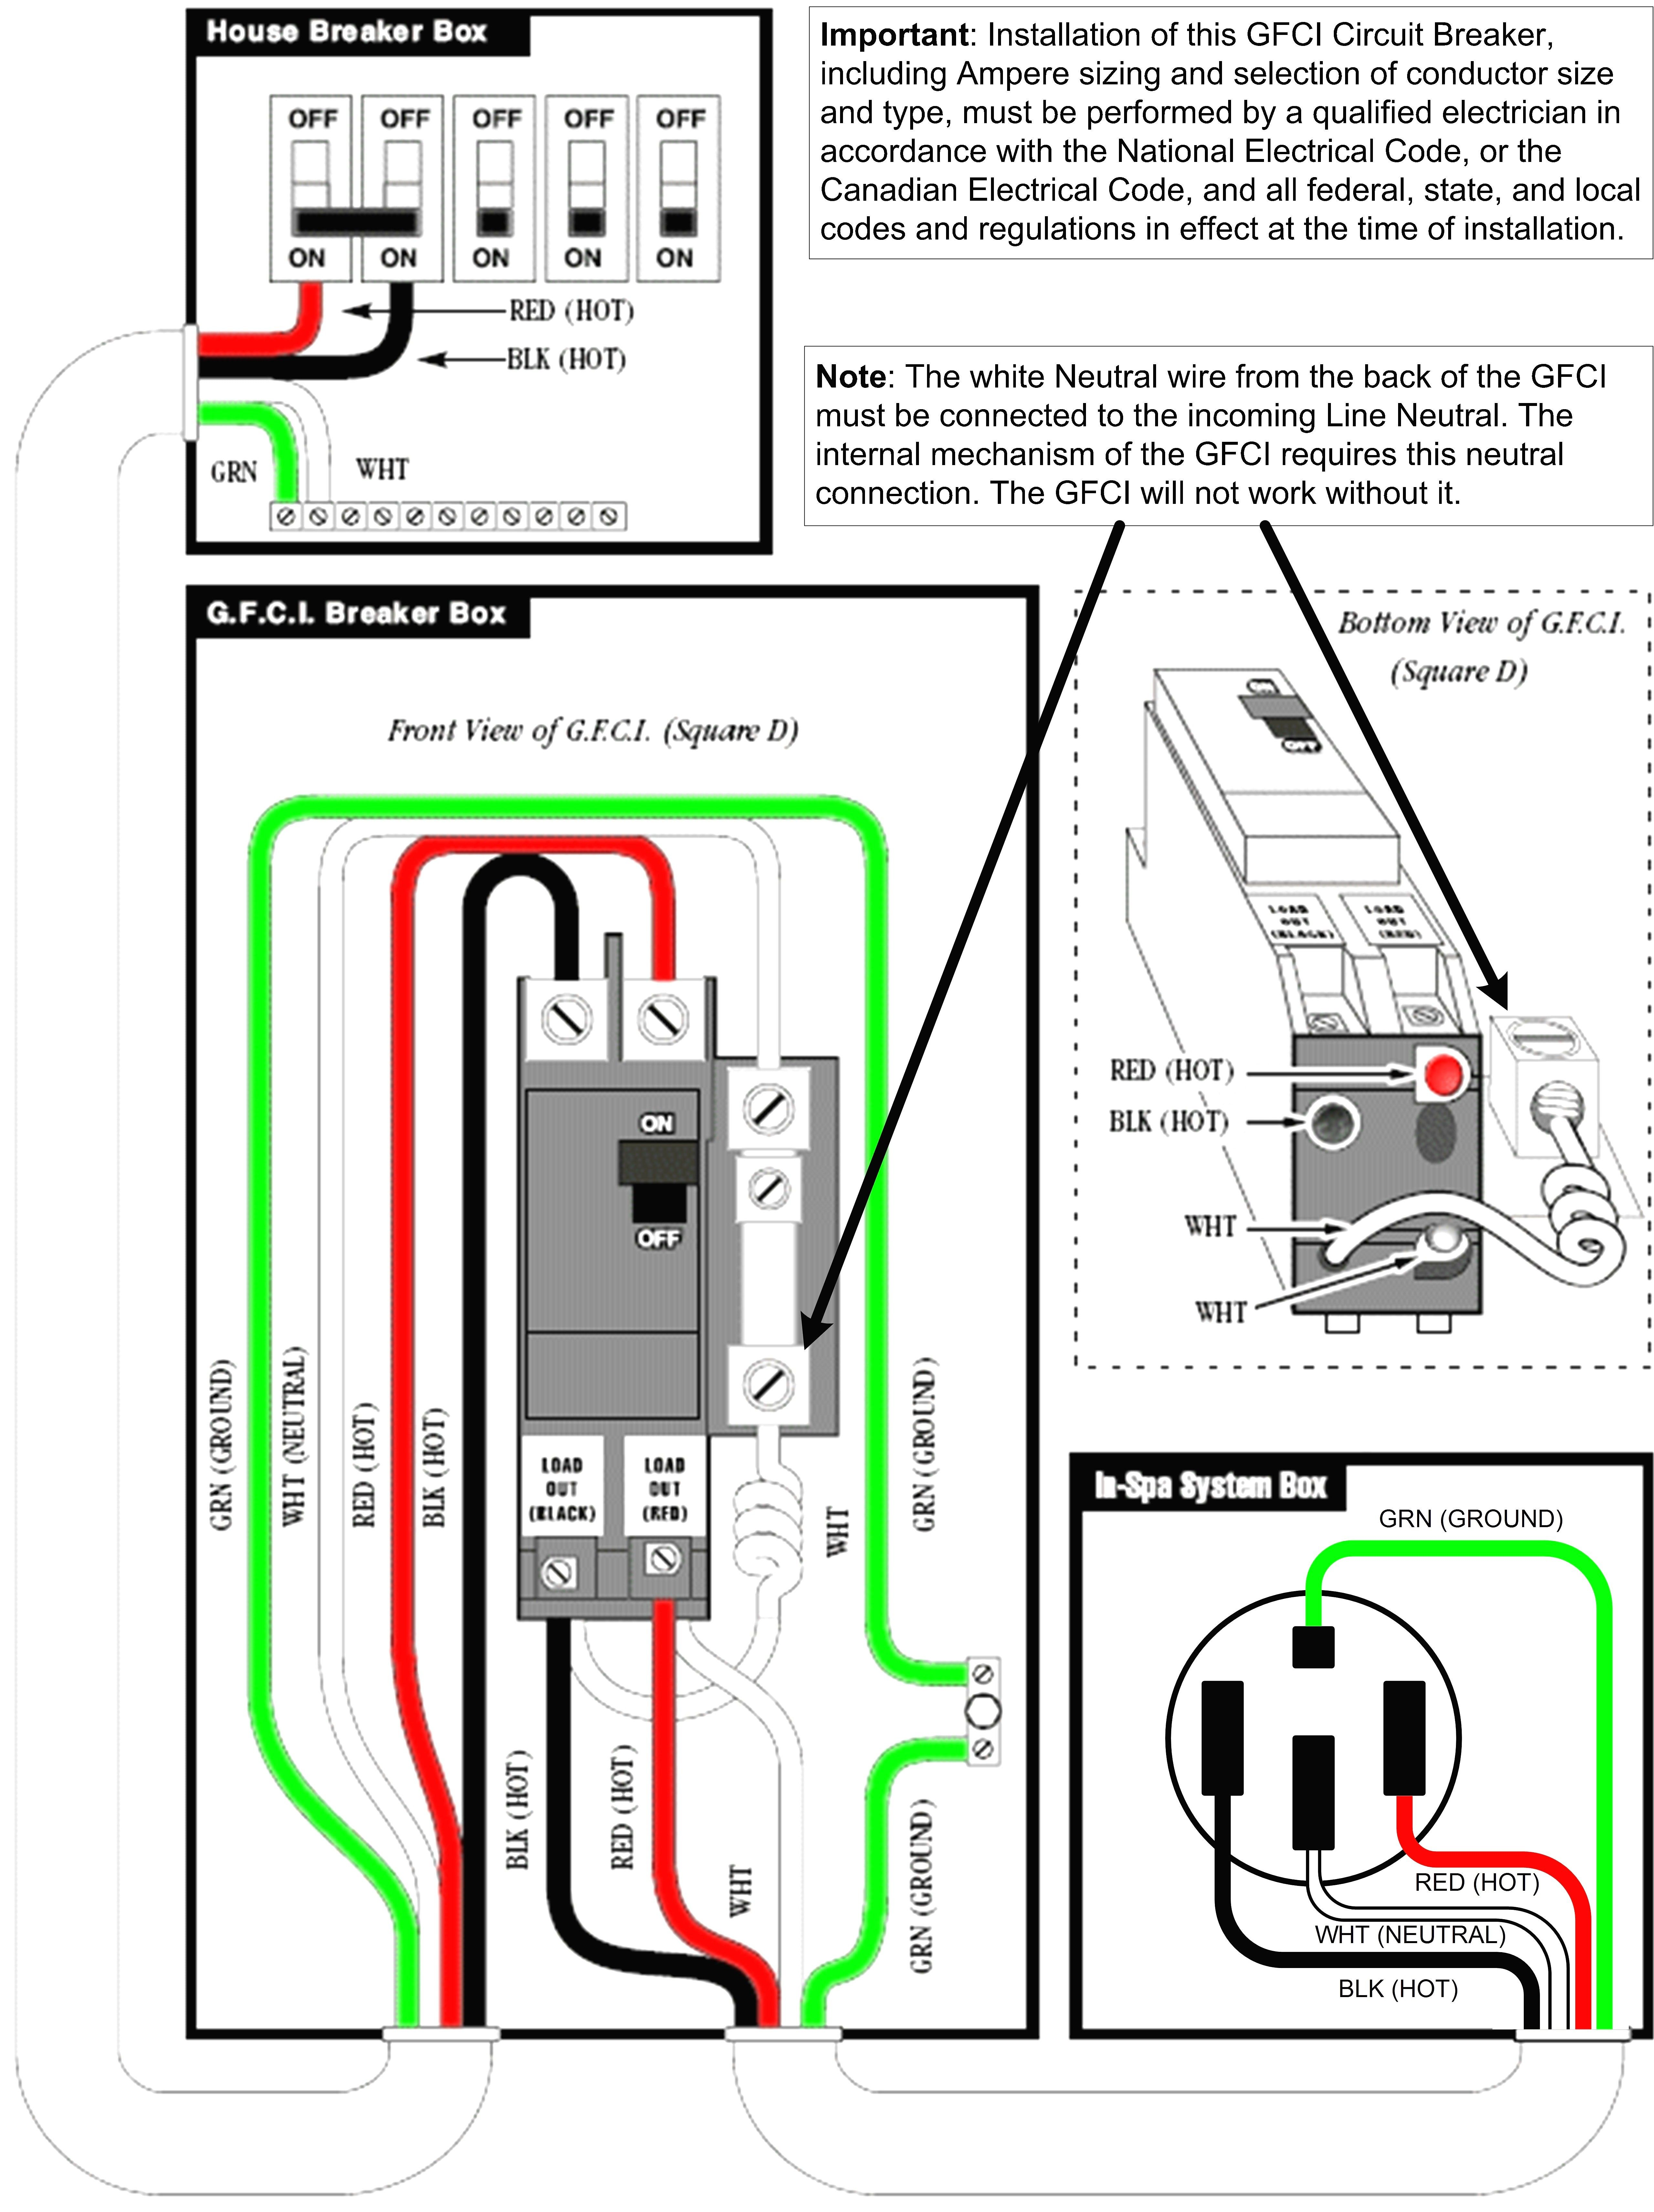 New Gfci Wiring Diagram for Hot Tub #diagram #diagramsample  #diagramtemplate #wiringdiagram #diagramchart #wo… | Electrical panel wiring,  Outlet wiring, ElectricityPinterest